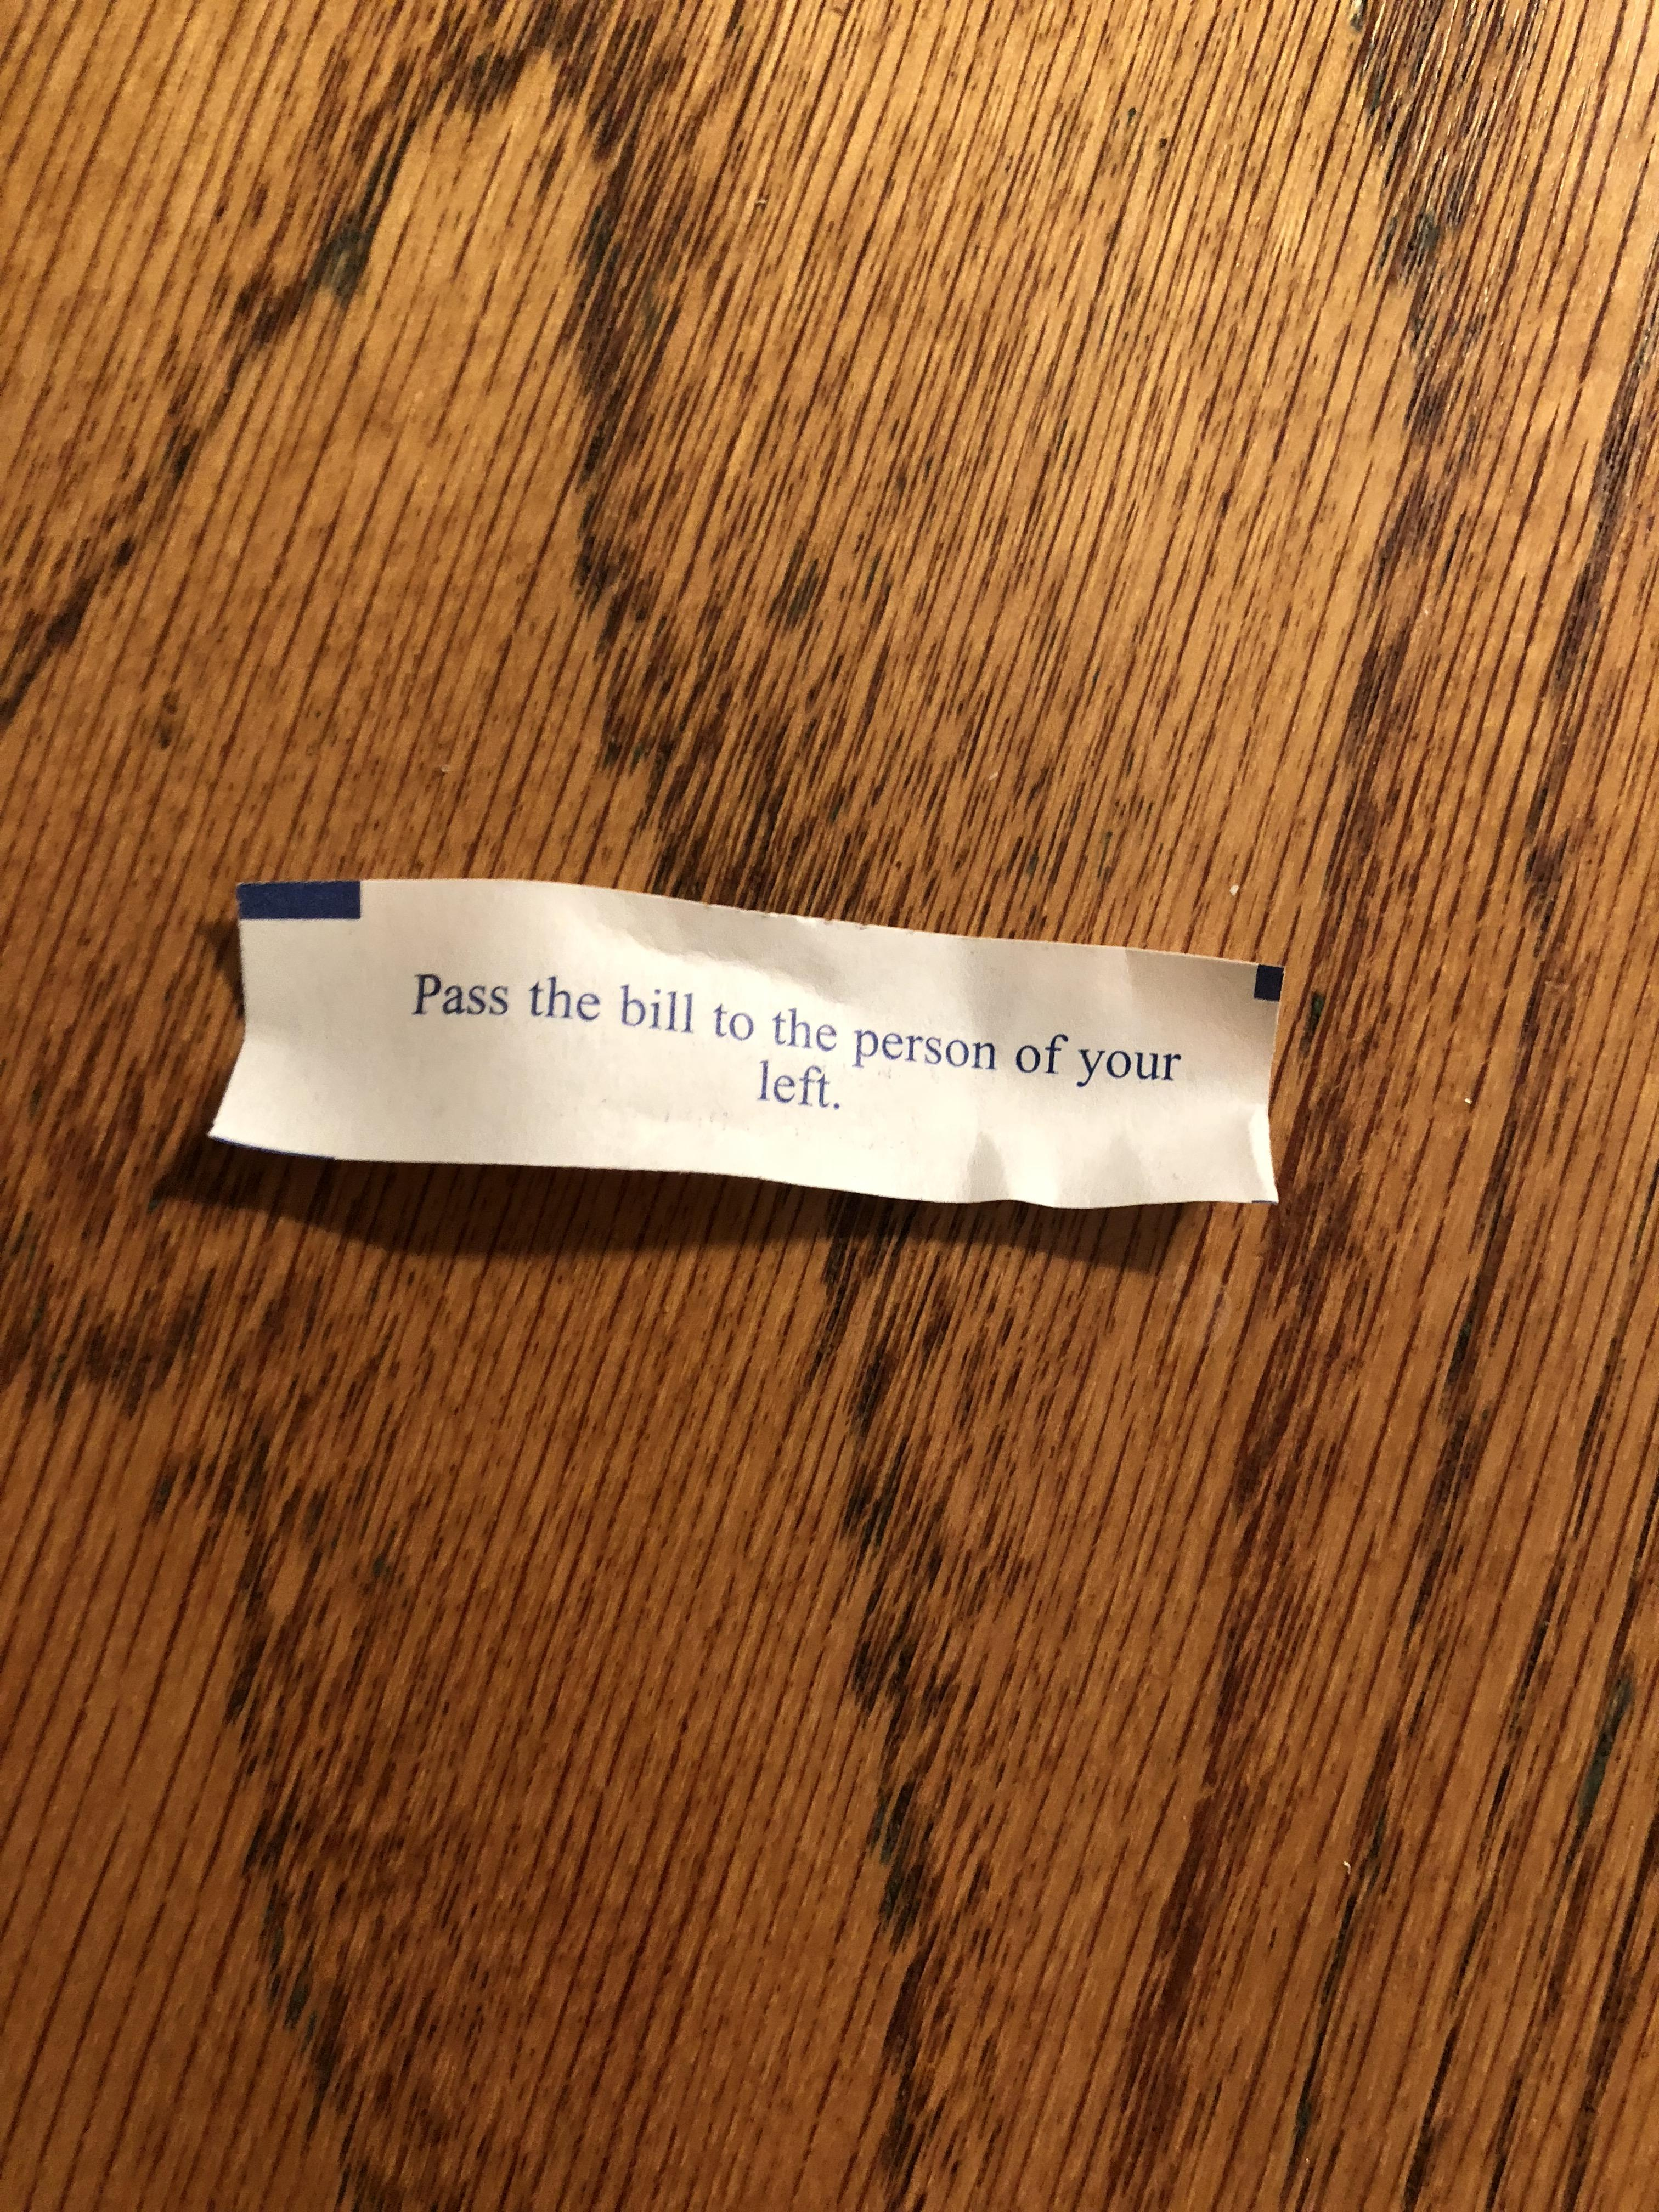 30 Hilarious Messages Found In Fortune Cookies — InspireMore